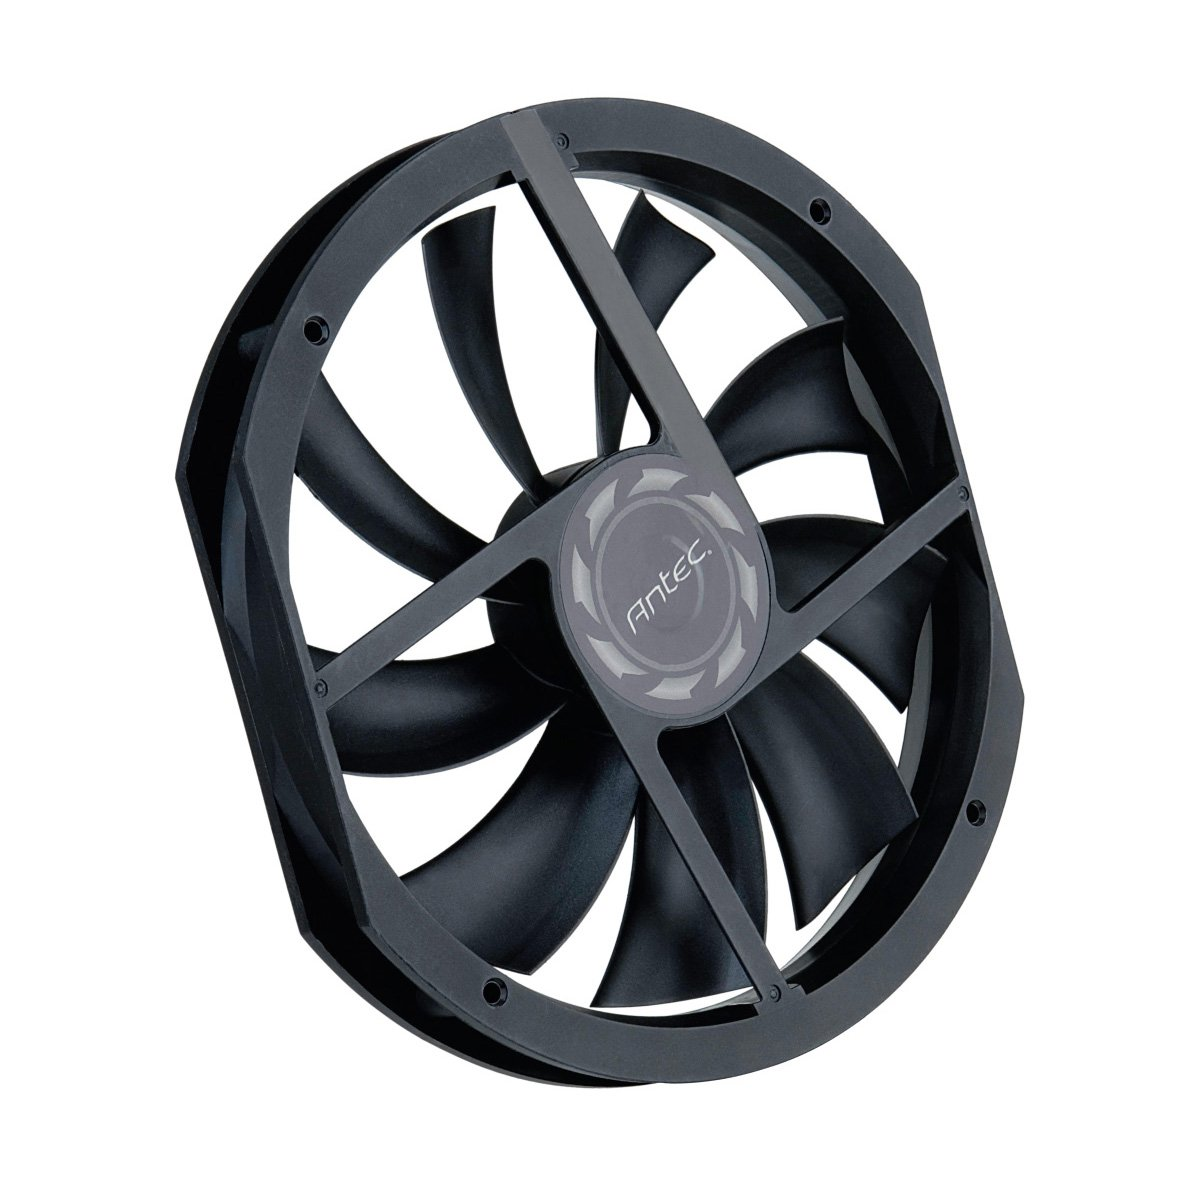 The Best 120mm And 200mm Computer Pc Case Cooling Fans